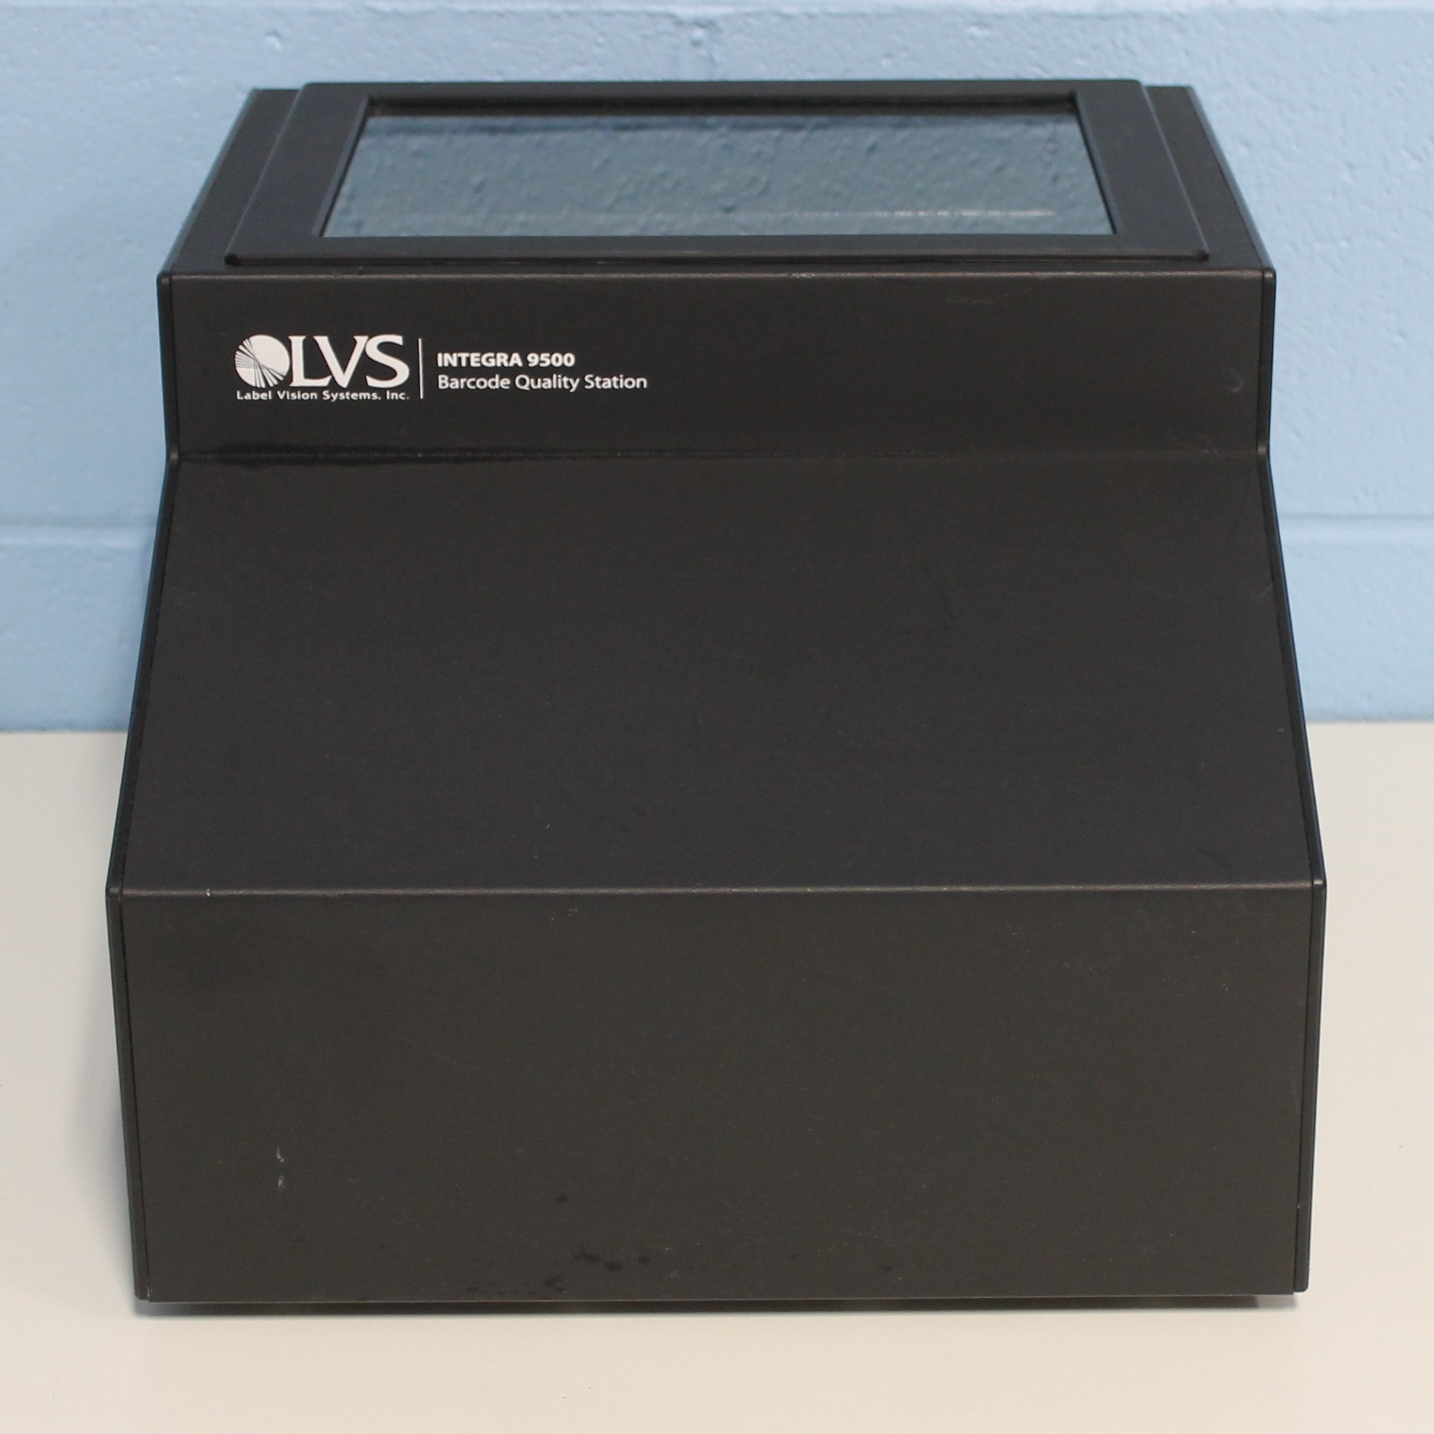 LVS INTEGRA 9500 Bar Code Quality Station Image